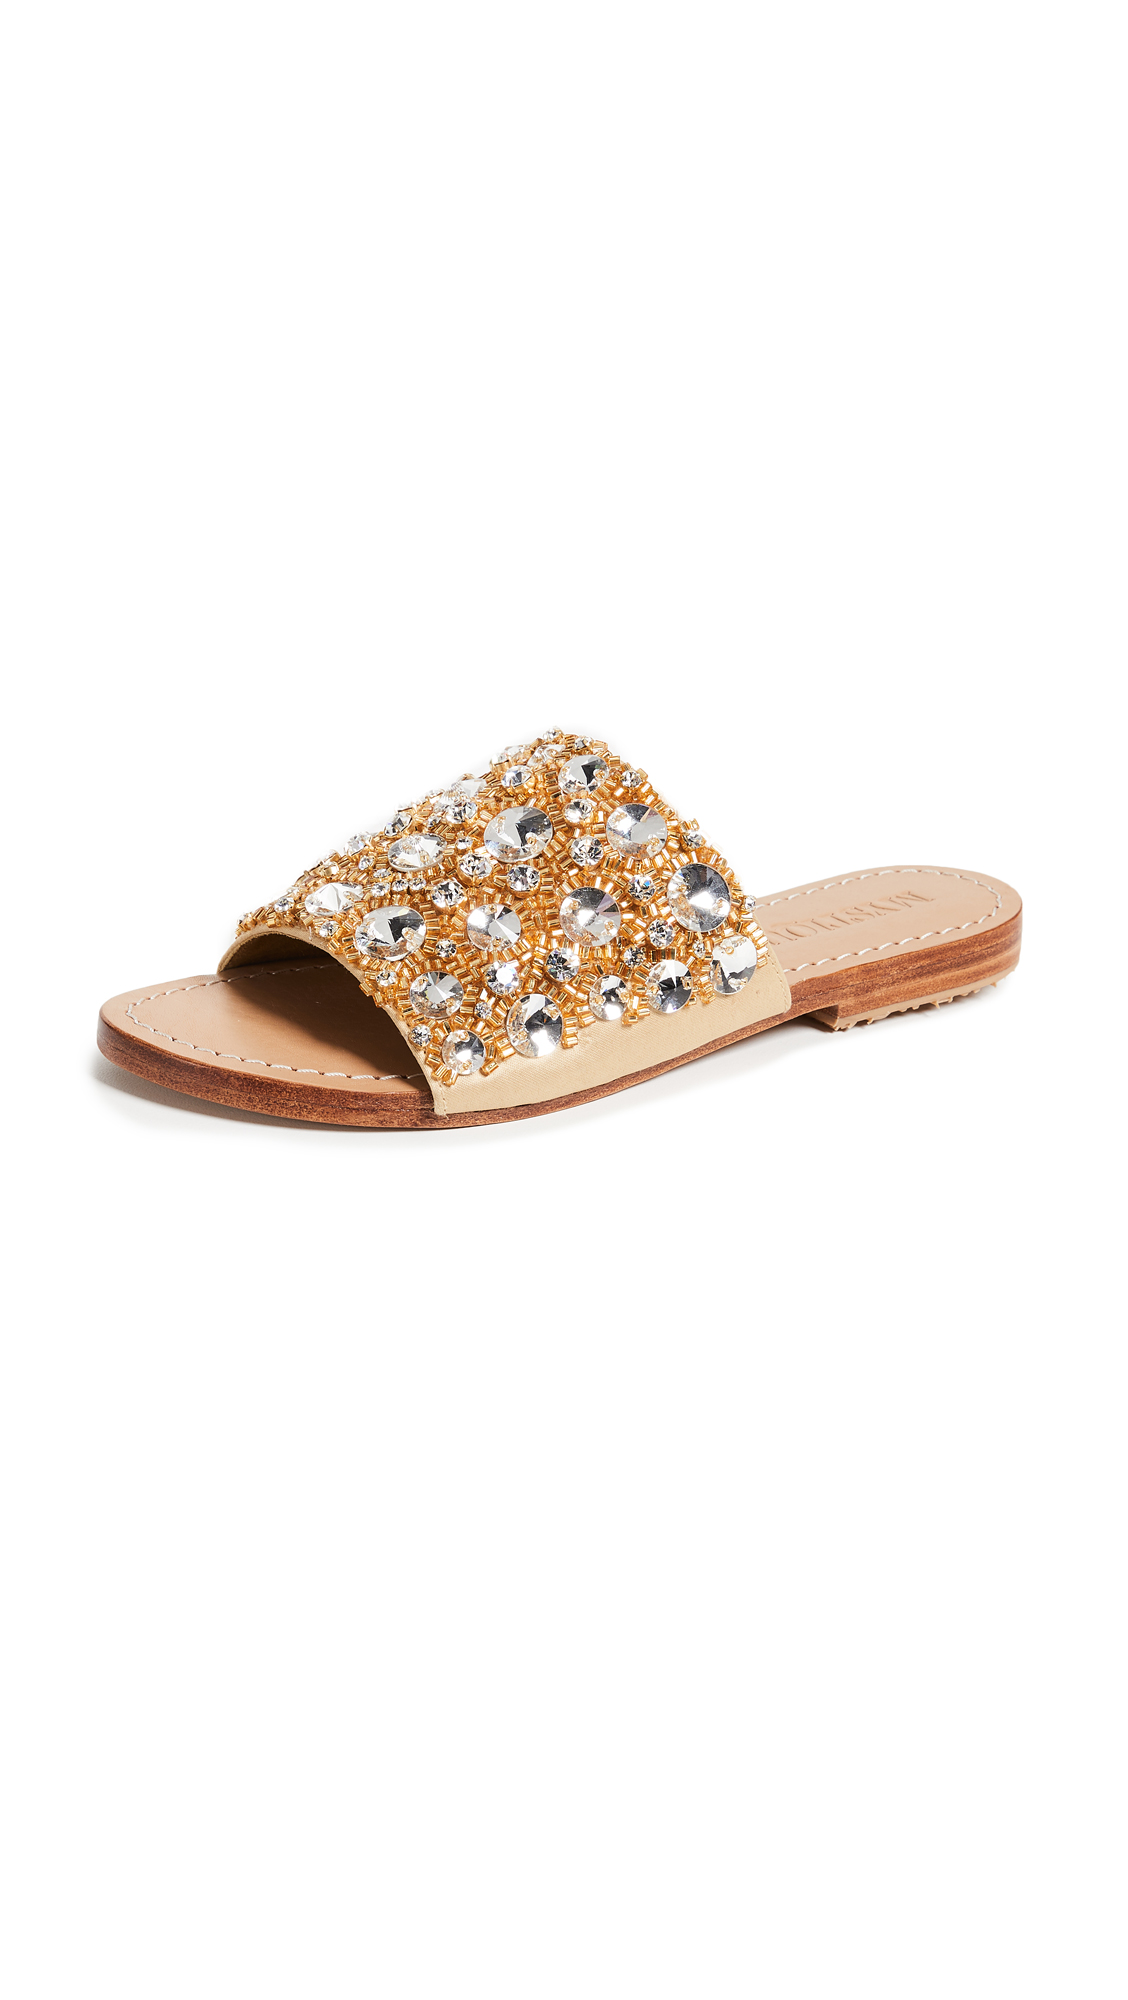 Mystique Jewel Slides - Gold